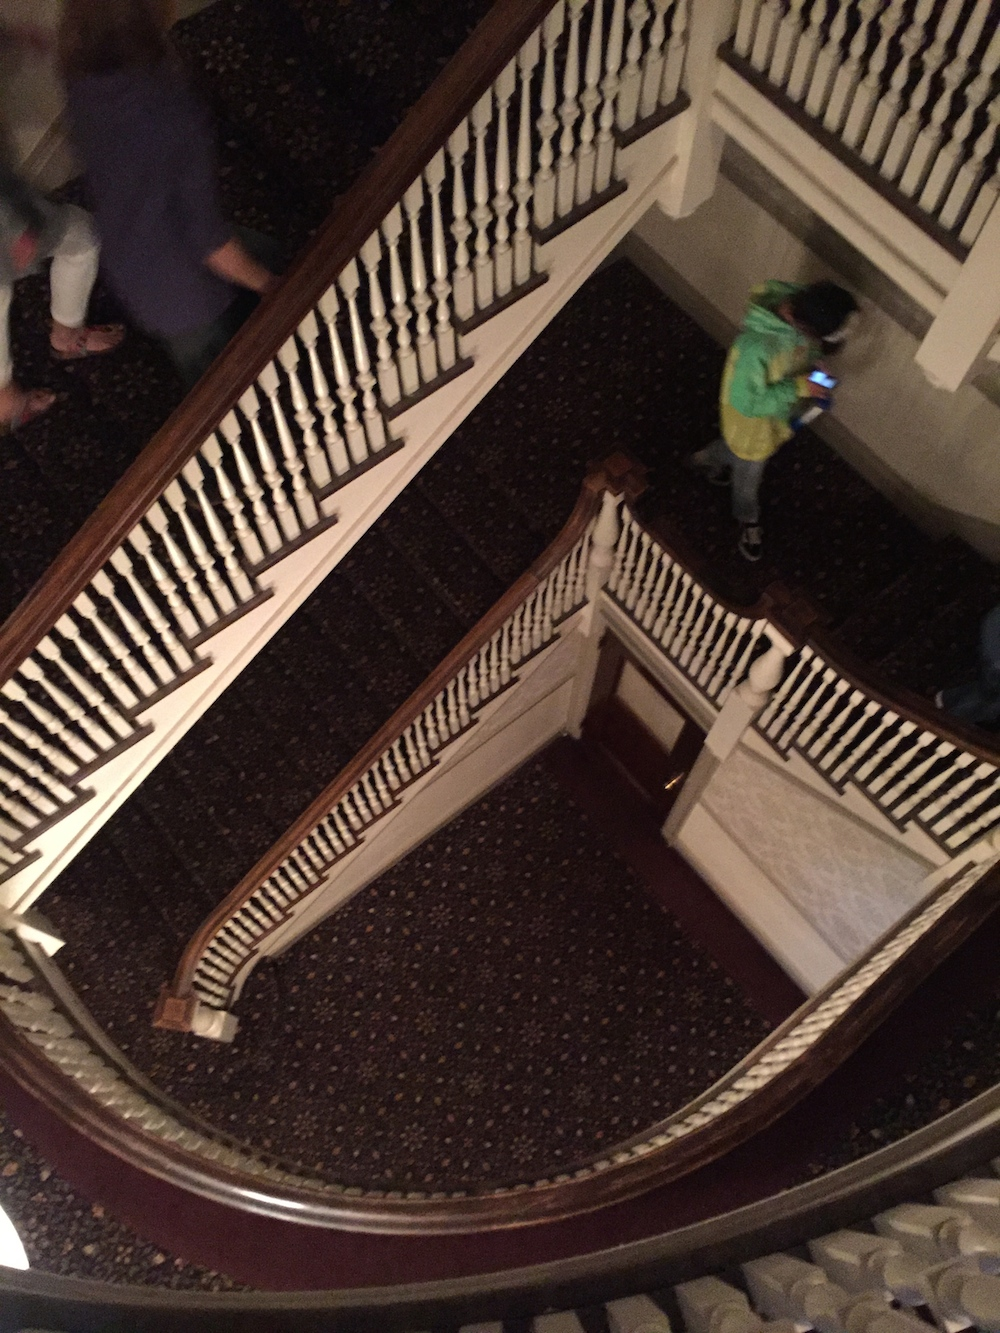 Spiral staircase rumored to be haunted at the Stanley Hotel in Estes Park, Colorado